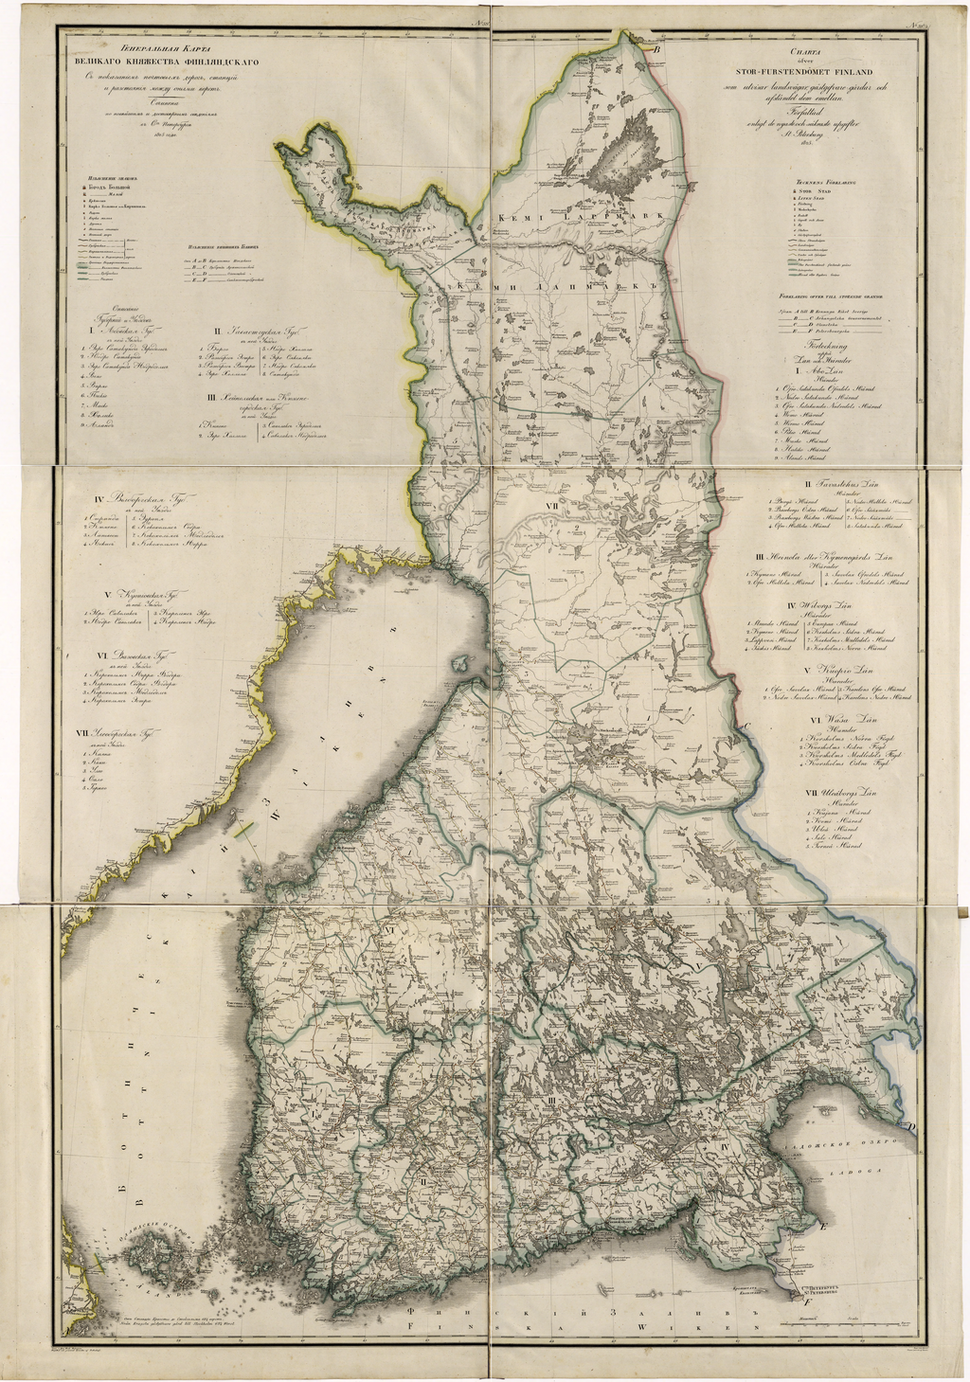 General Map of the Grand Duchy of Finland. Indicating Postal Roads, Stations and the Distance in Versts Between Them- According to the Latest Verified Data in St. Petersburg in 1825 WDL353